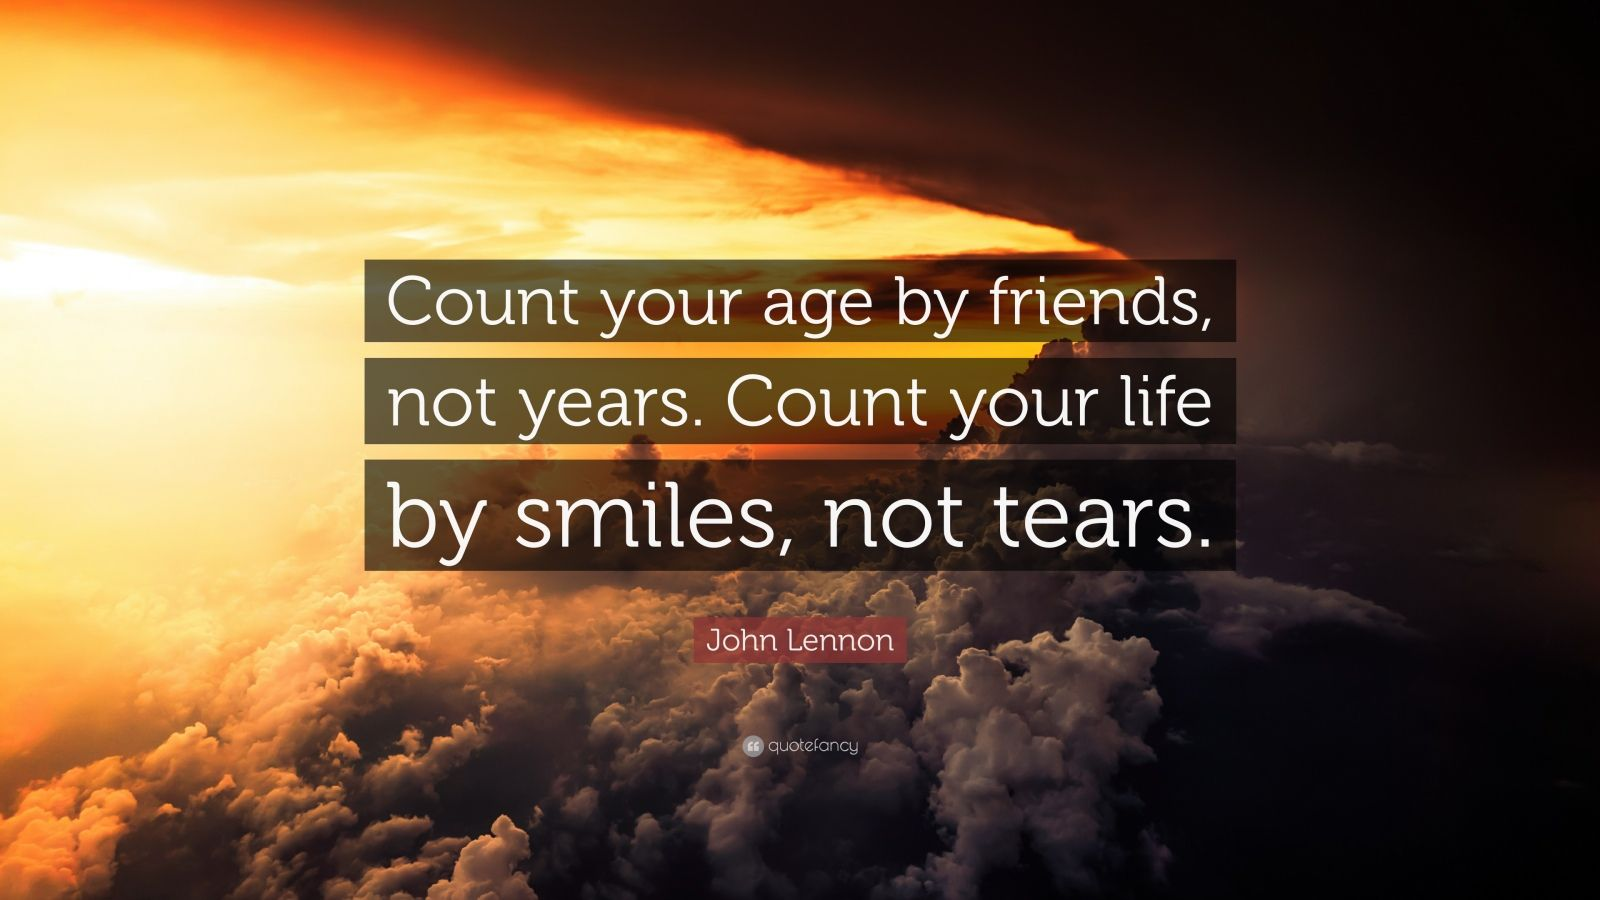 William Shakespeare Love Quotes Wallpaper John Lennon Quote Count Your Age By Friends Not Years